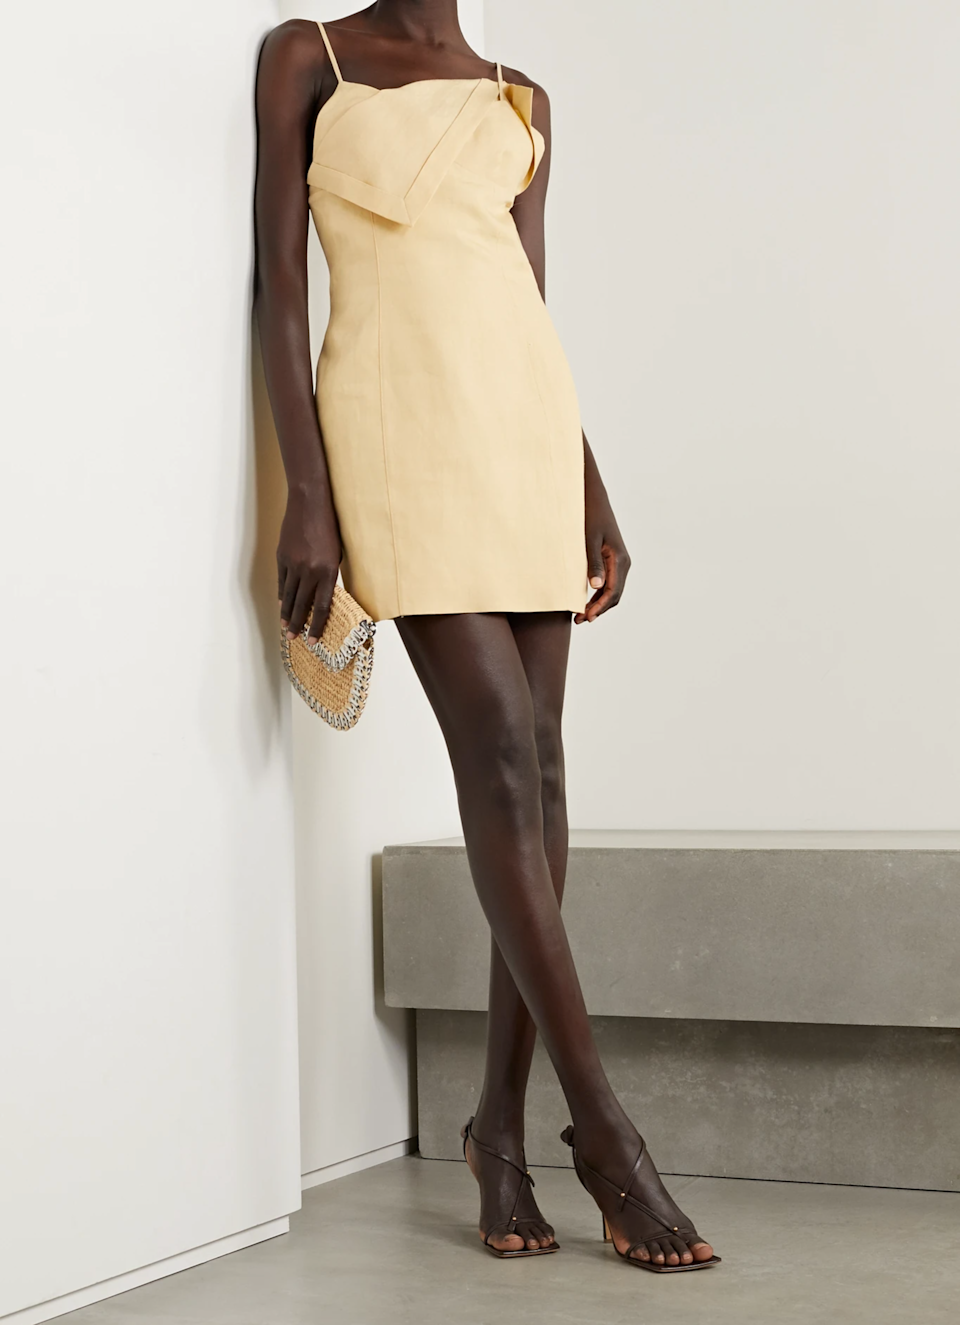 """At this point, we're convinced that everything Jacquemus creates is perfection, including but not limited to this cream linen mini. $625, Net-a-Porter. <a href=""""https://www.net-a-porter.com/en-us/shop/product/jacquemus/clothing/mini-dresses/open-back-draped-linen-mini-dress/23471478575812302"""" rel=""""nofollow noopener"""" target=""""_blank"""" data-ylk=""""slk:Get it now!"""" class=""""link rapid-noclick-resp"""">Get it now!</a>"""